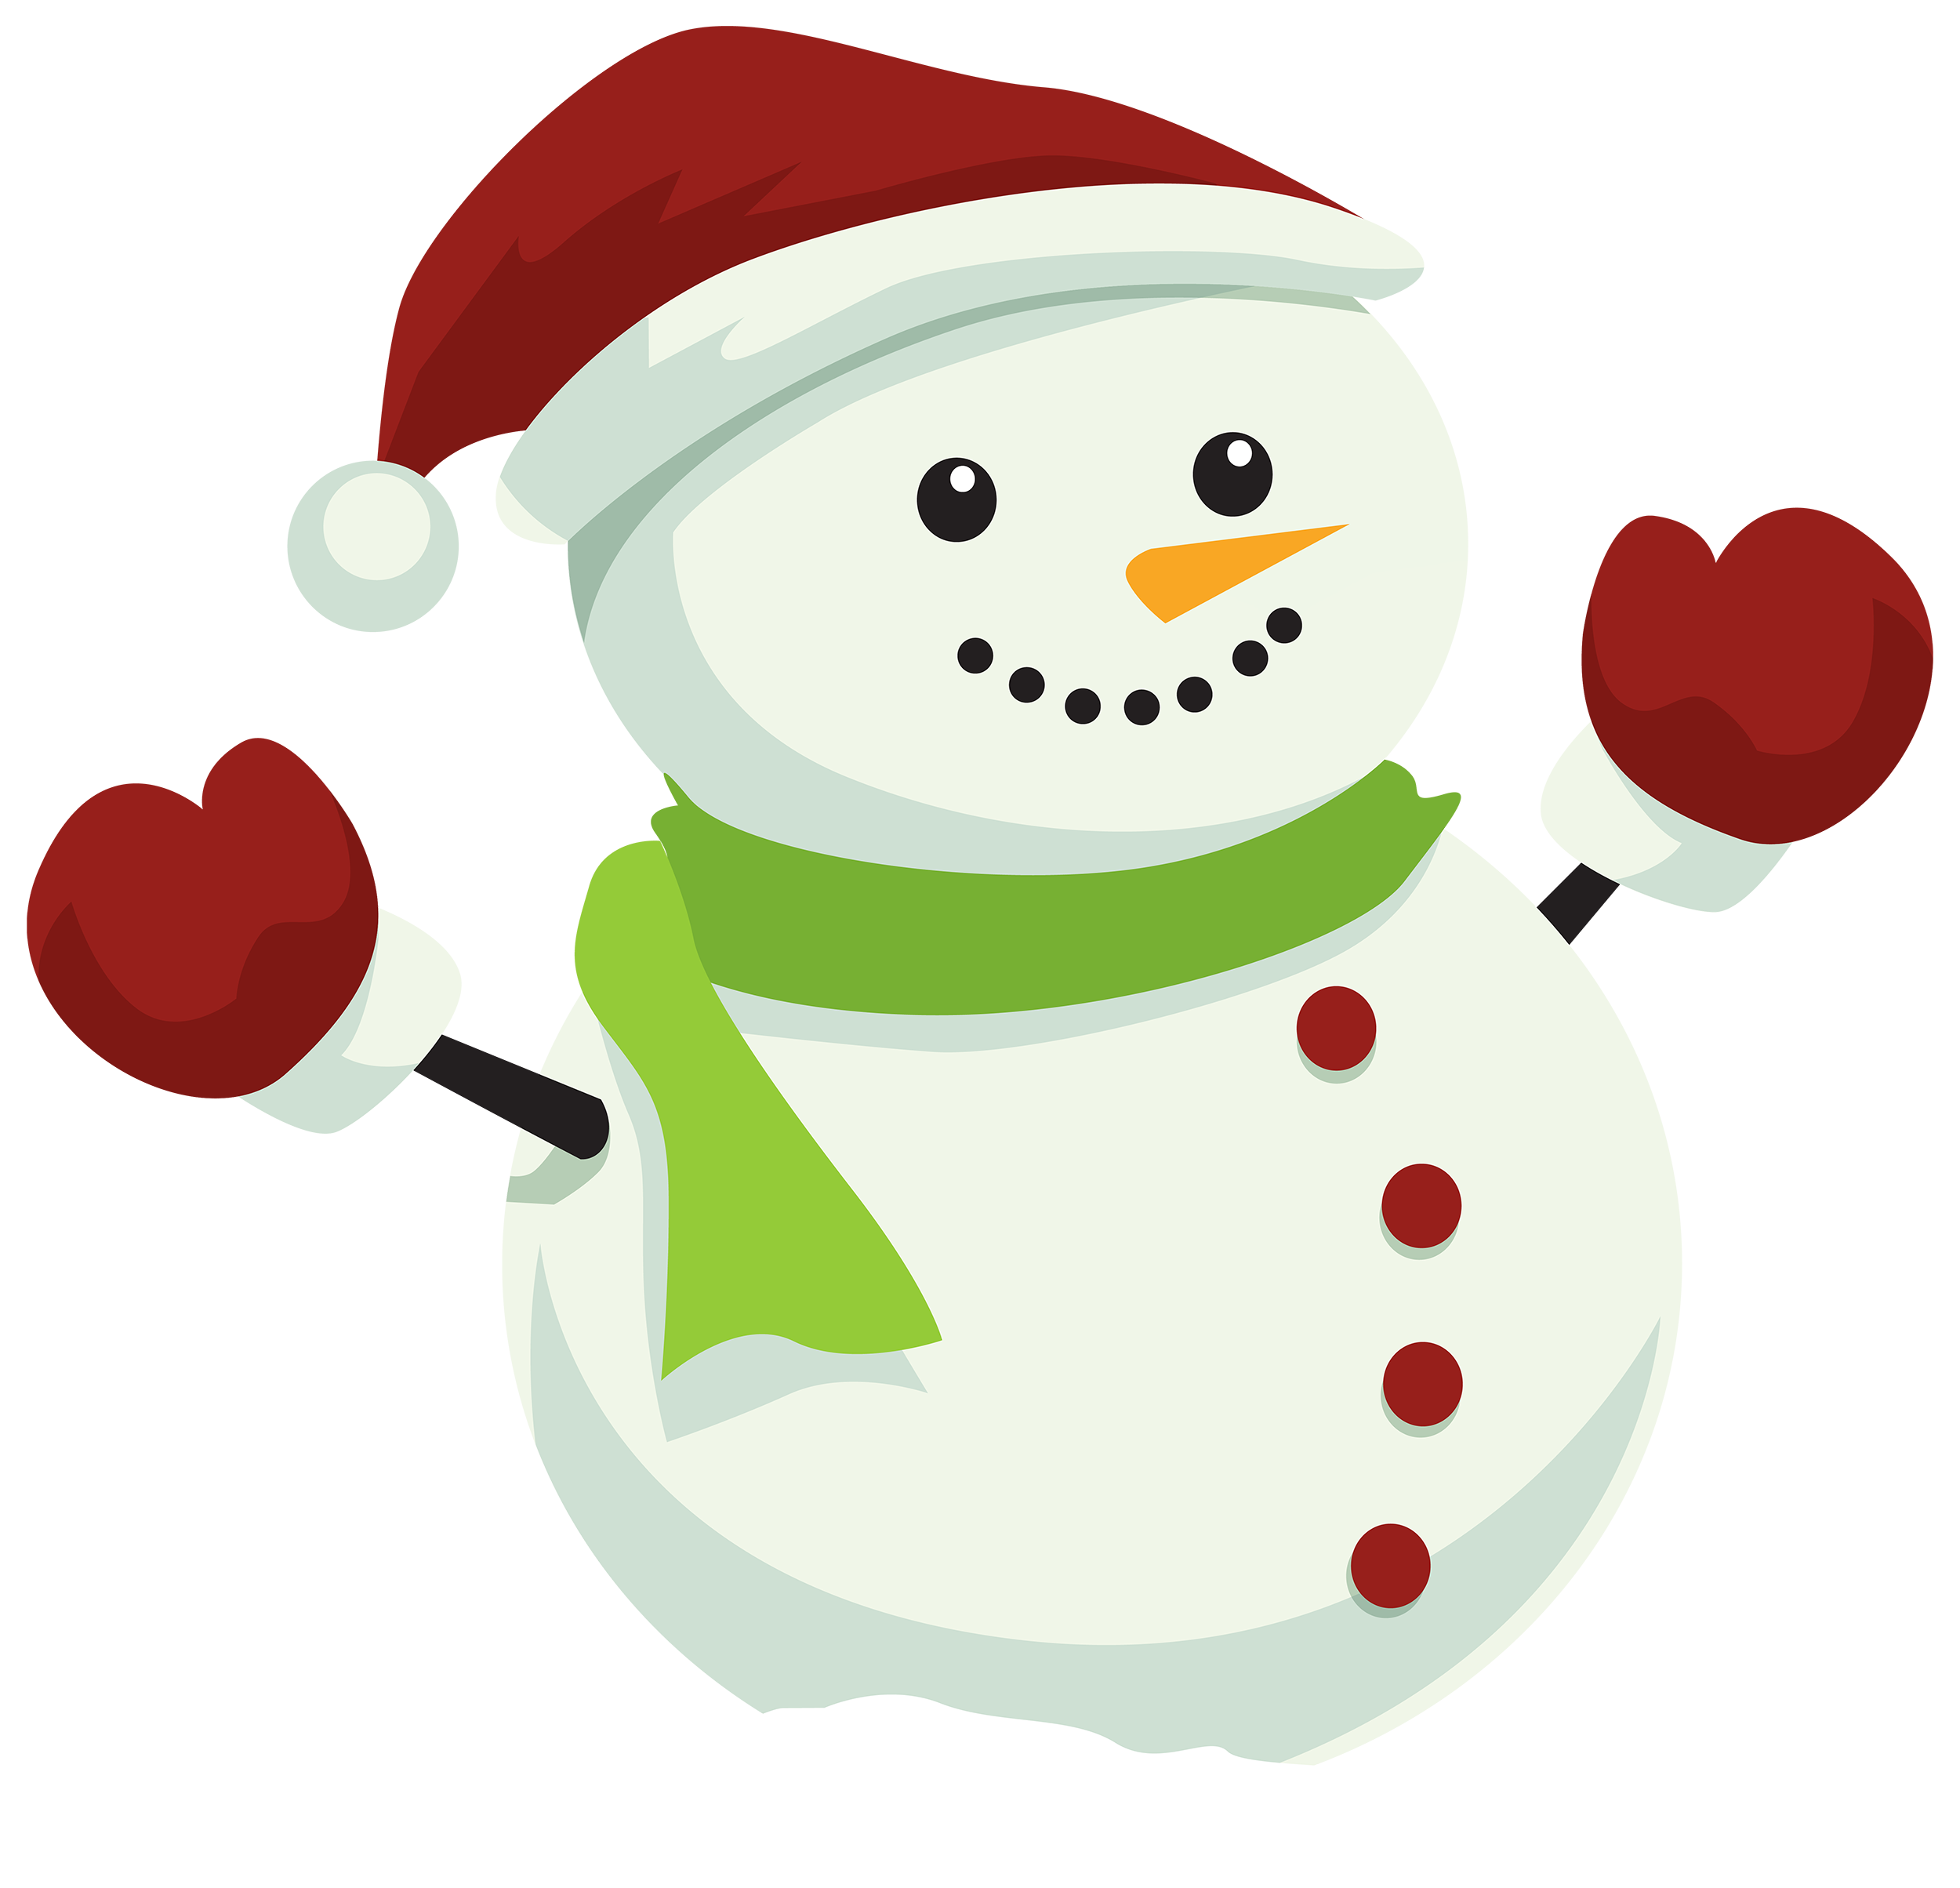 Snowflake with snowman face clipart jpg free Christmas Cartoon Characters Clipart at GetDrawings.com | Free for ... jpg free